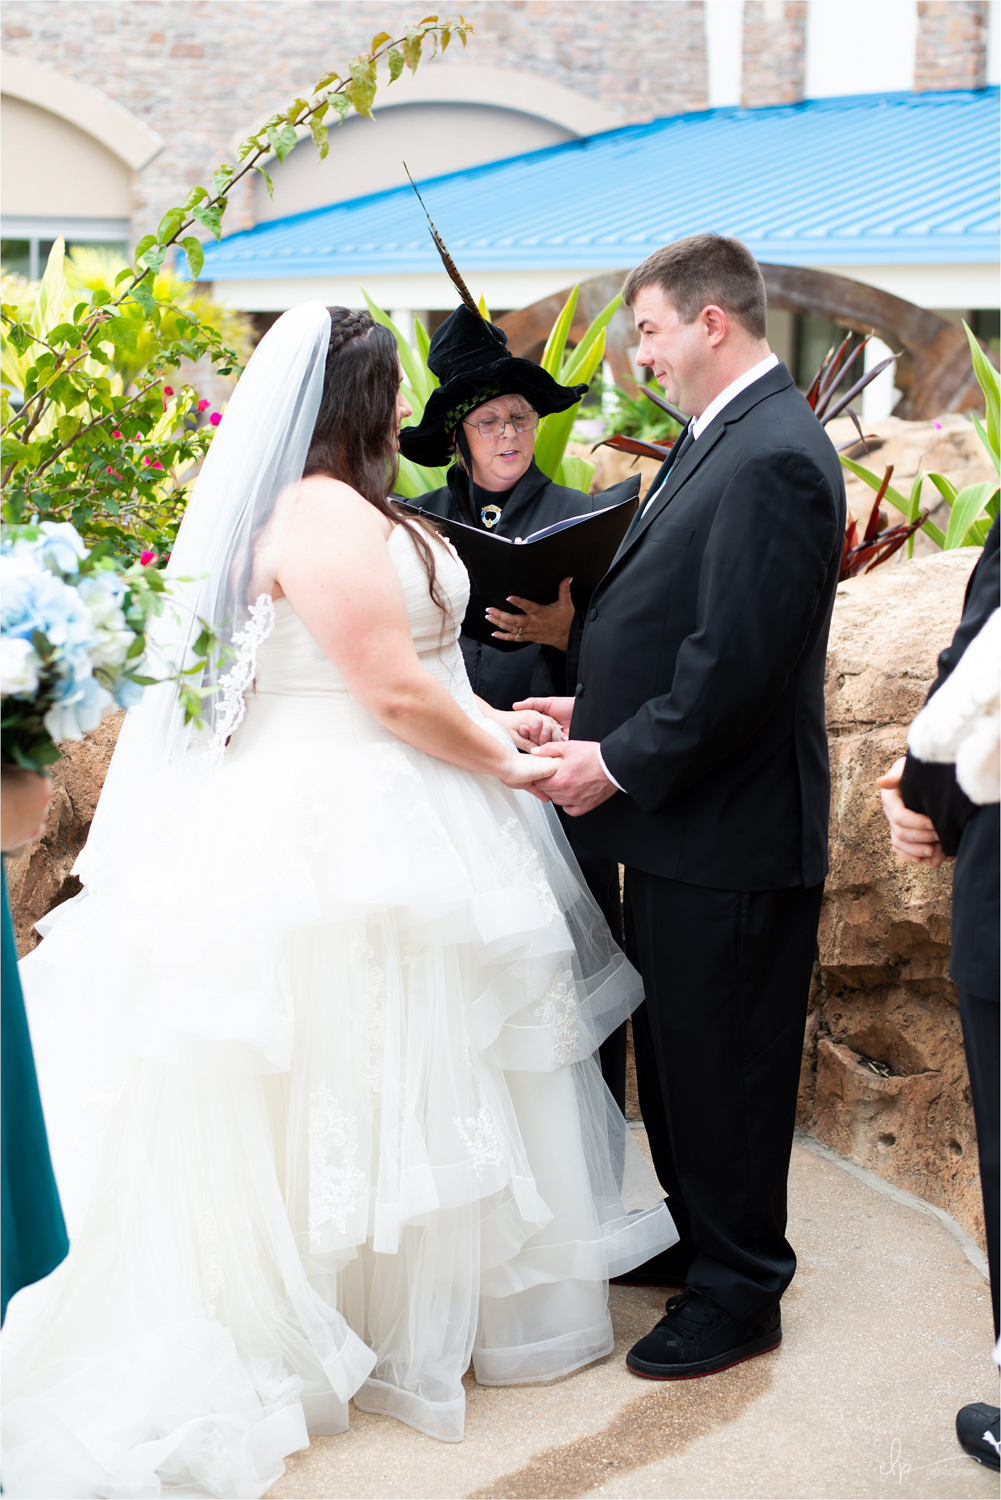 Getting married in florida wedding officiant marrying couple.